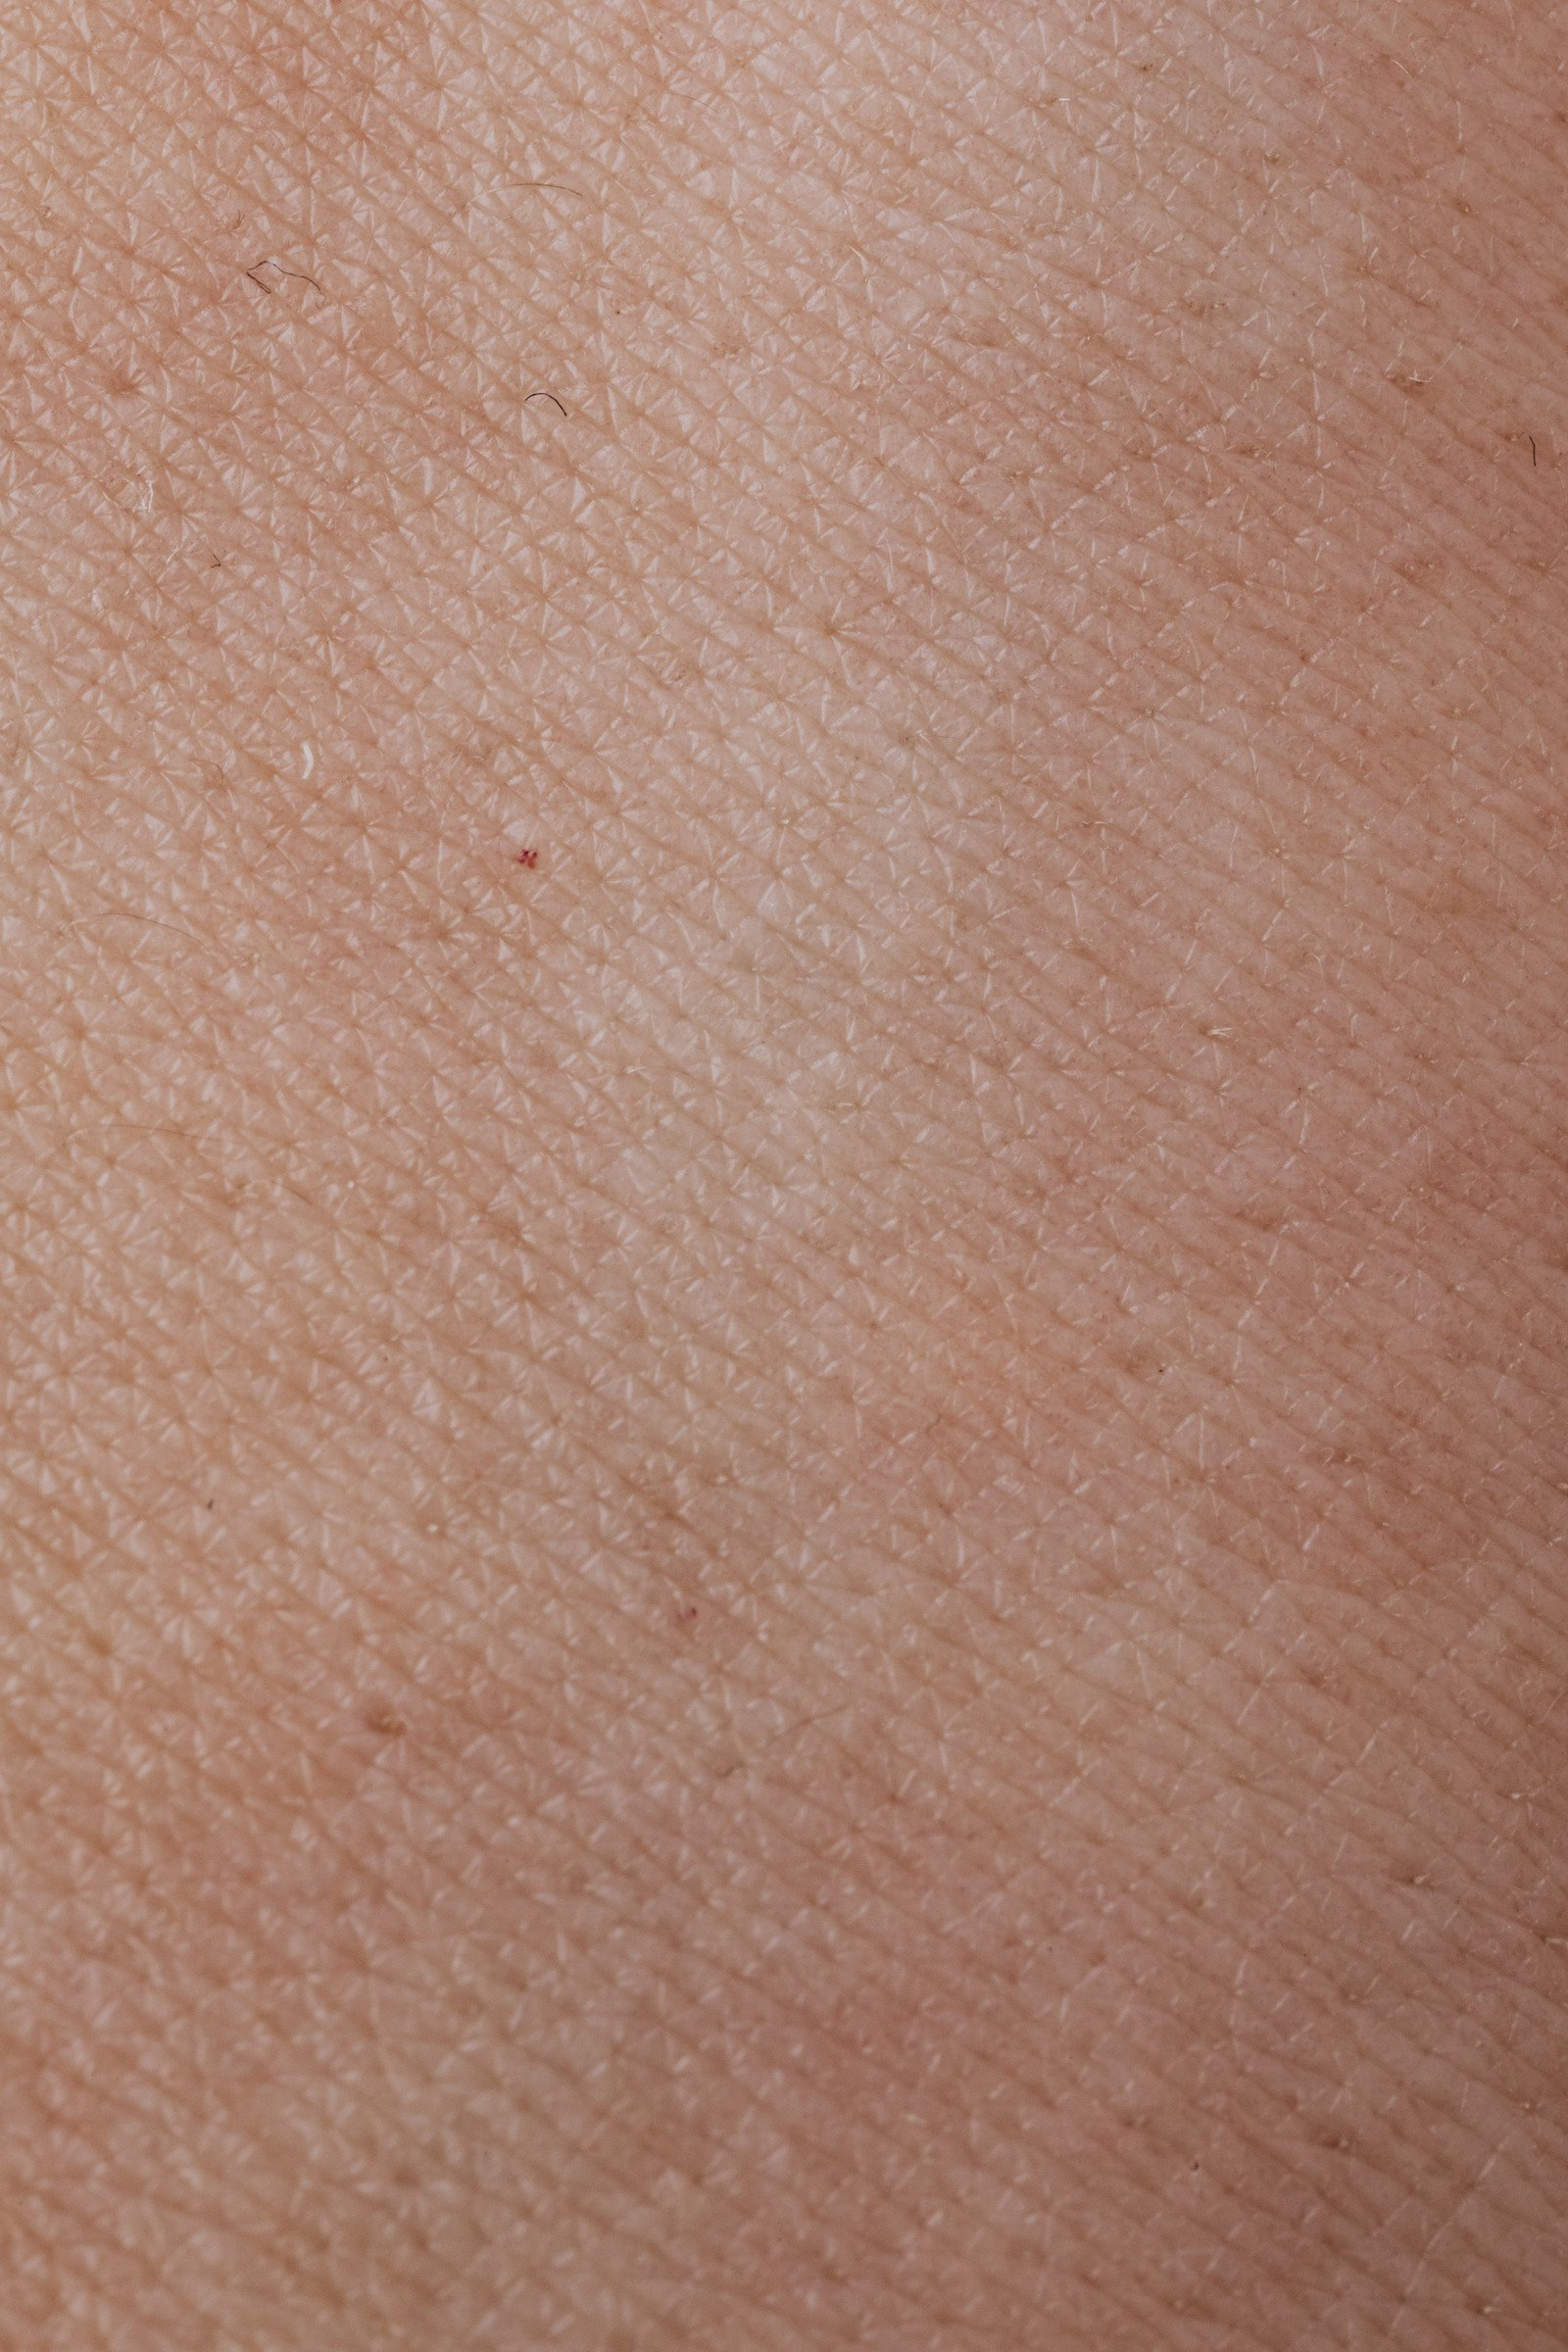 Top layer of the skin (Epidermis)